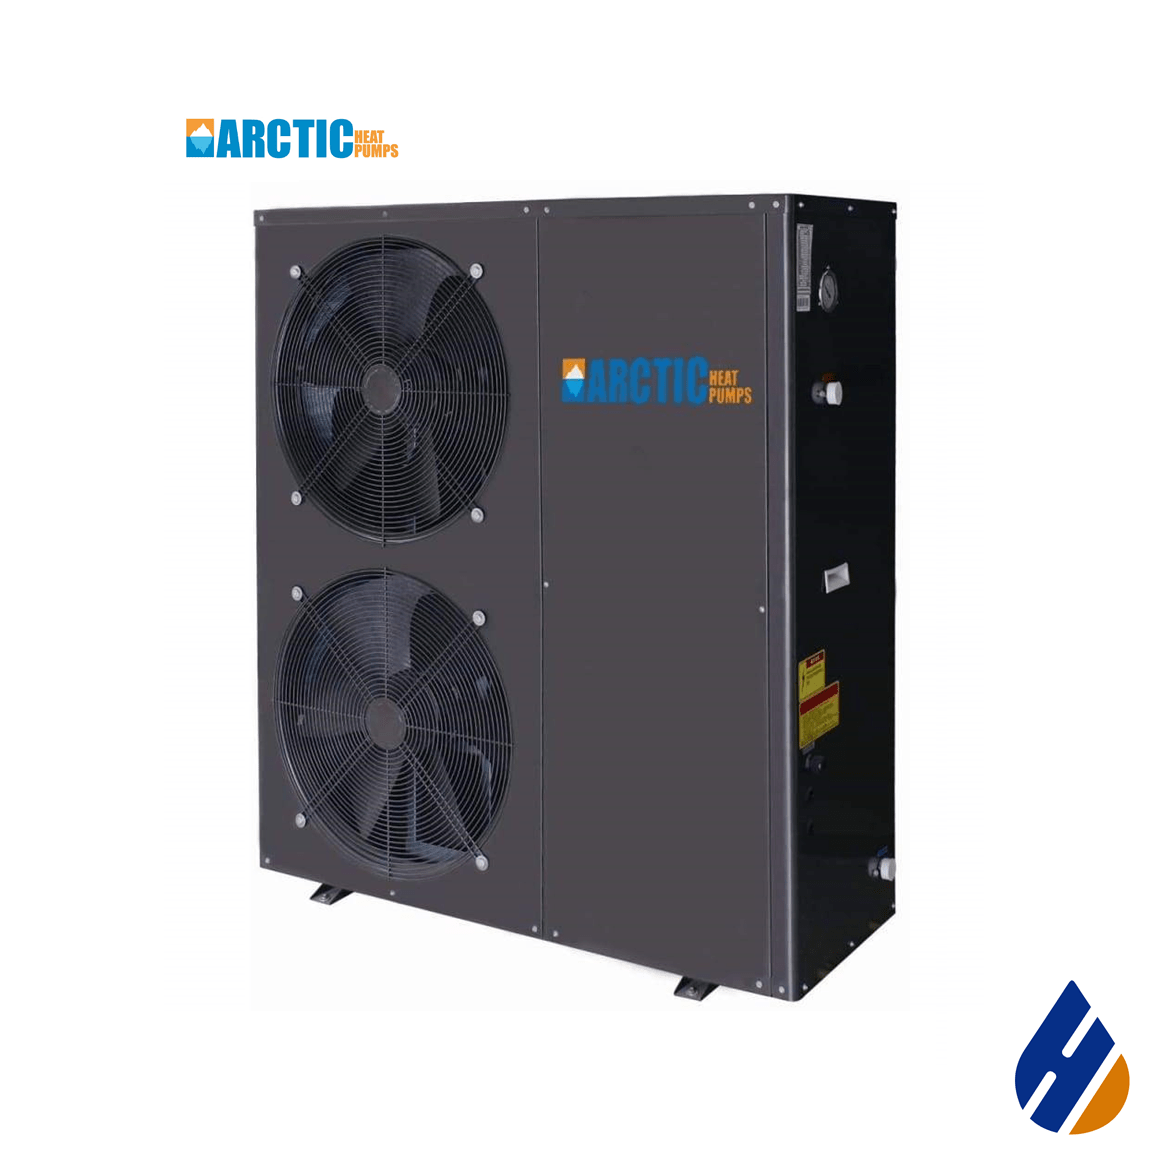 MAFP040A Air to Water Heat Pump for Space and DHW Heating and Space Cooling/Heating